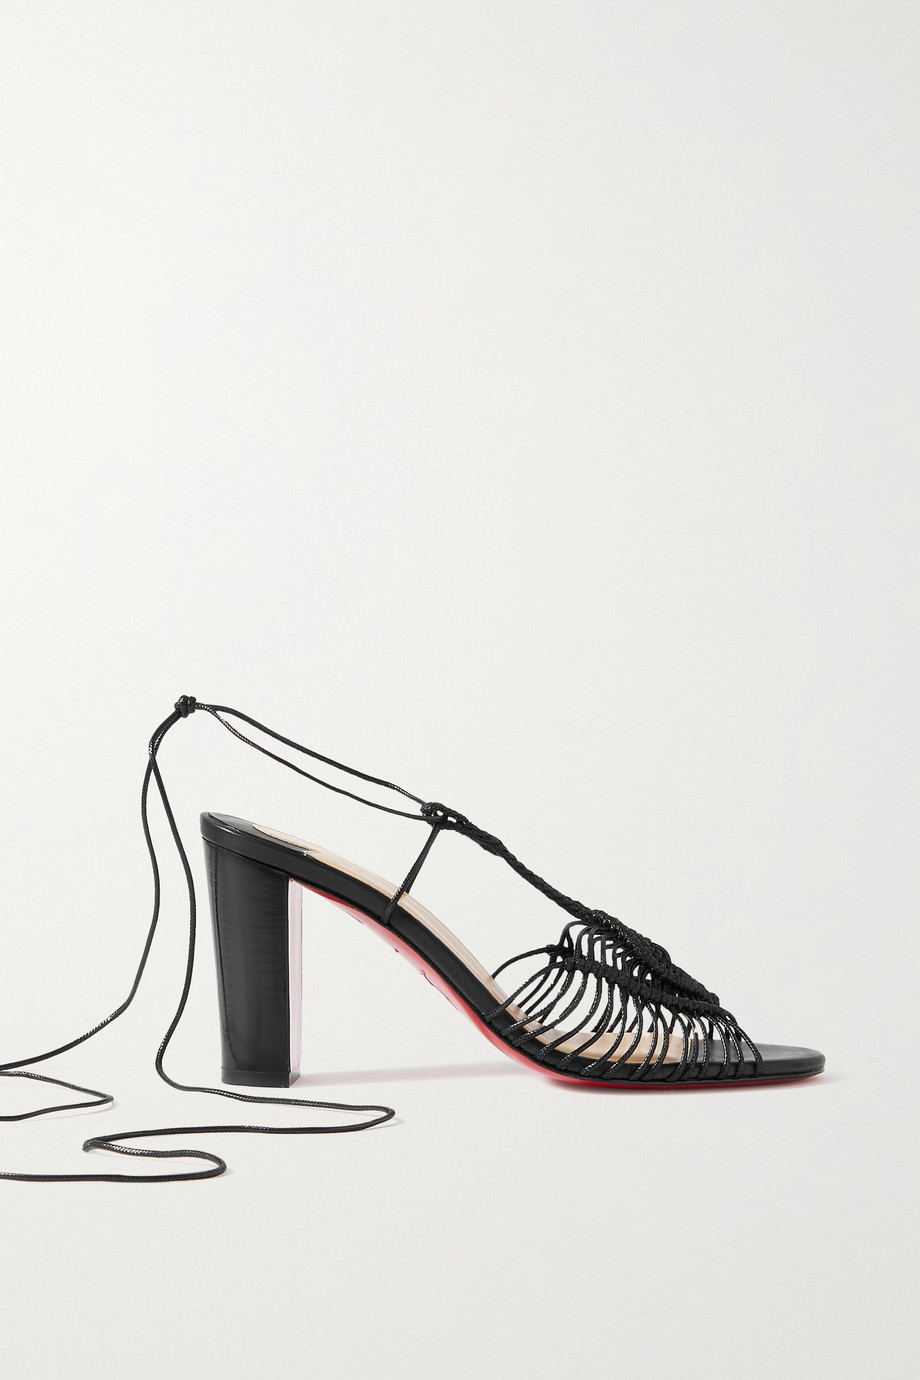 CHRISTIAN LOUBOUTIN Janis in Heels 85 macramé cotton sandals